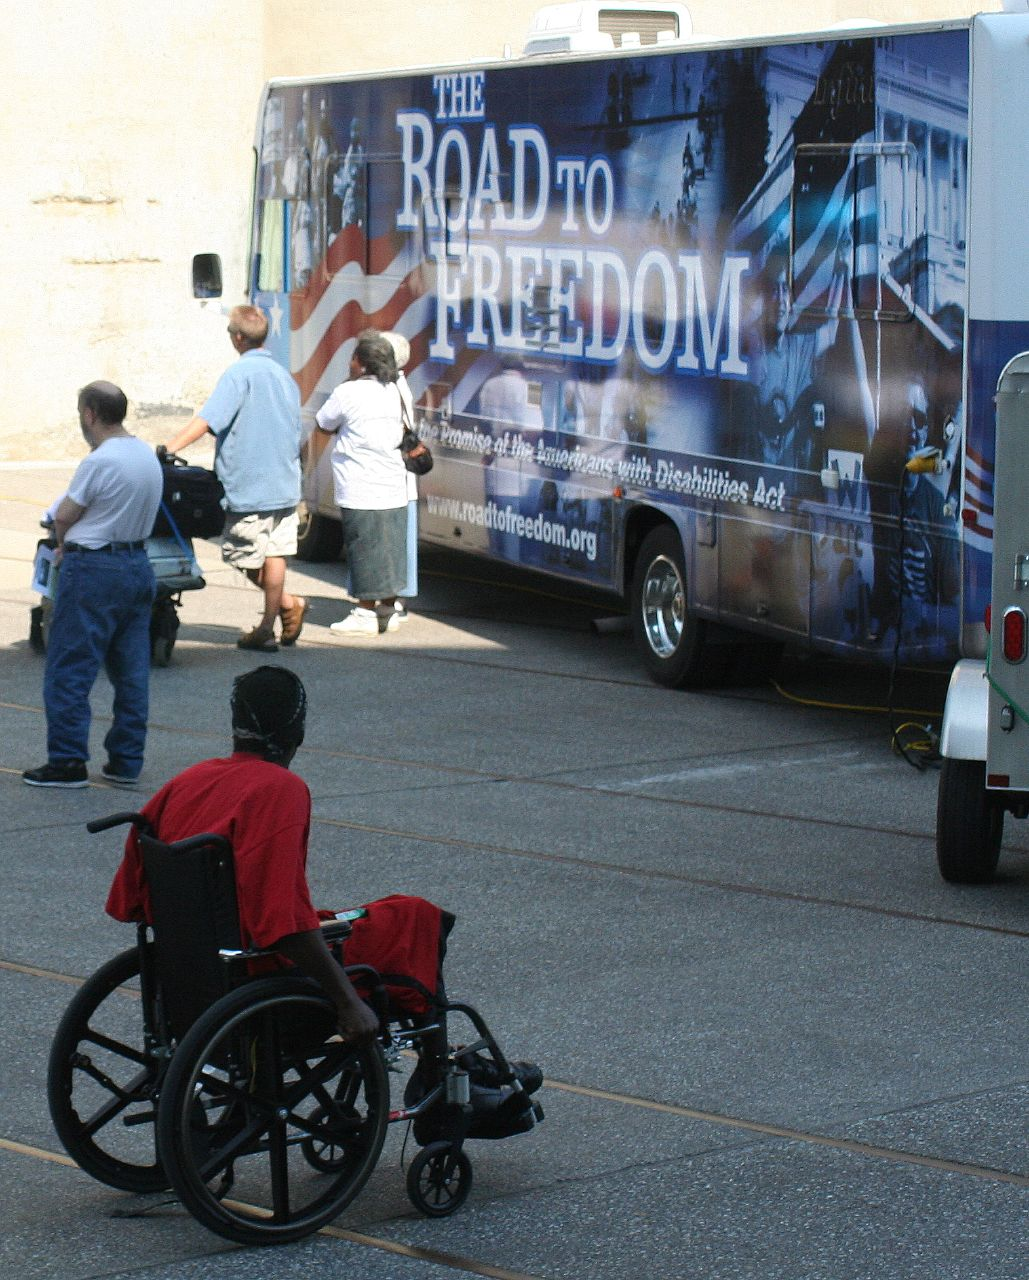 Photo from Minneapolis Road to Freedom tour, with a person in a wheelchair approaching the Road to Freedom van, decorated with images from disability rights work